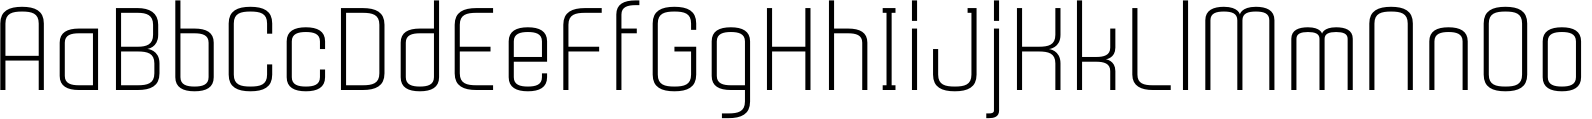 Gubia Regular Alternate Font